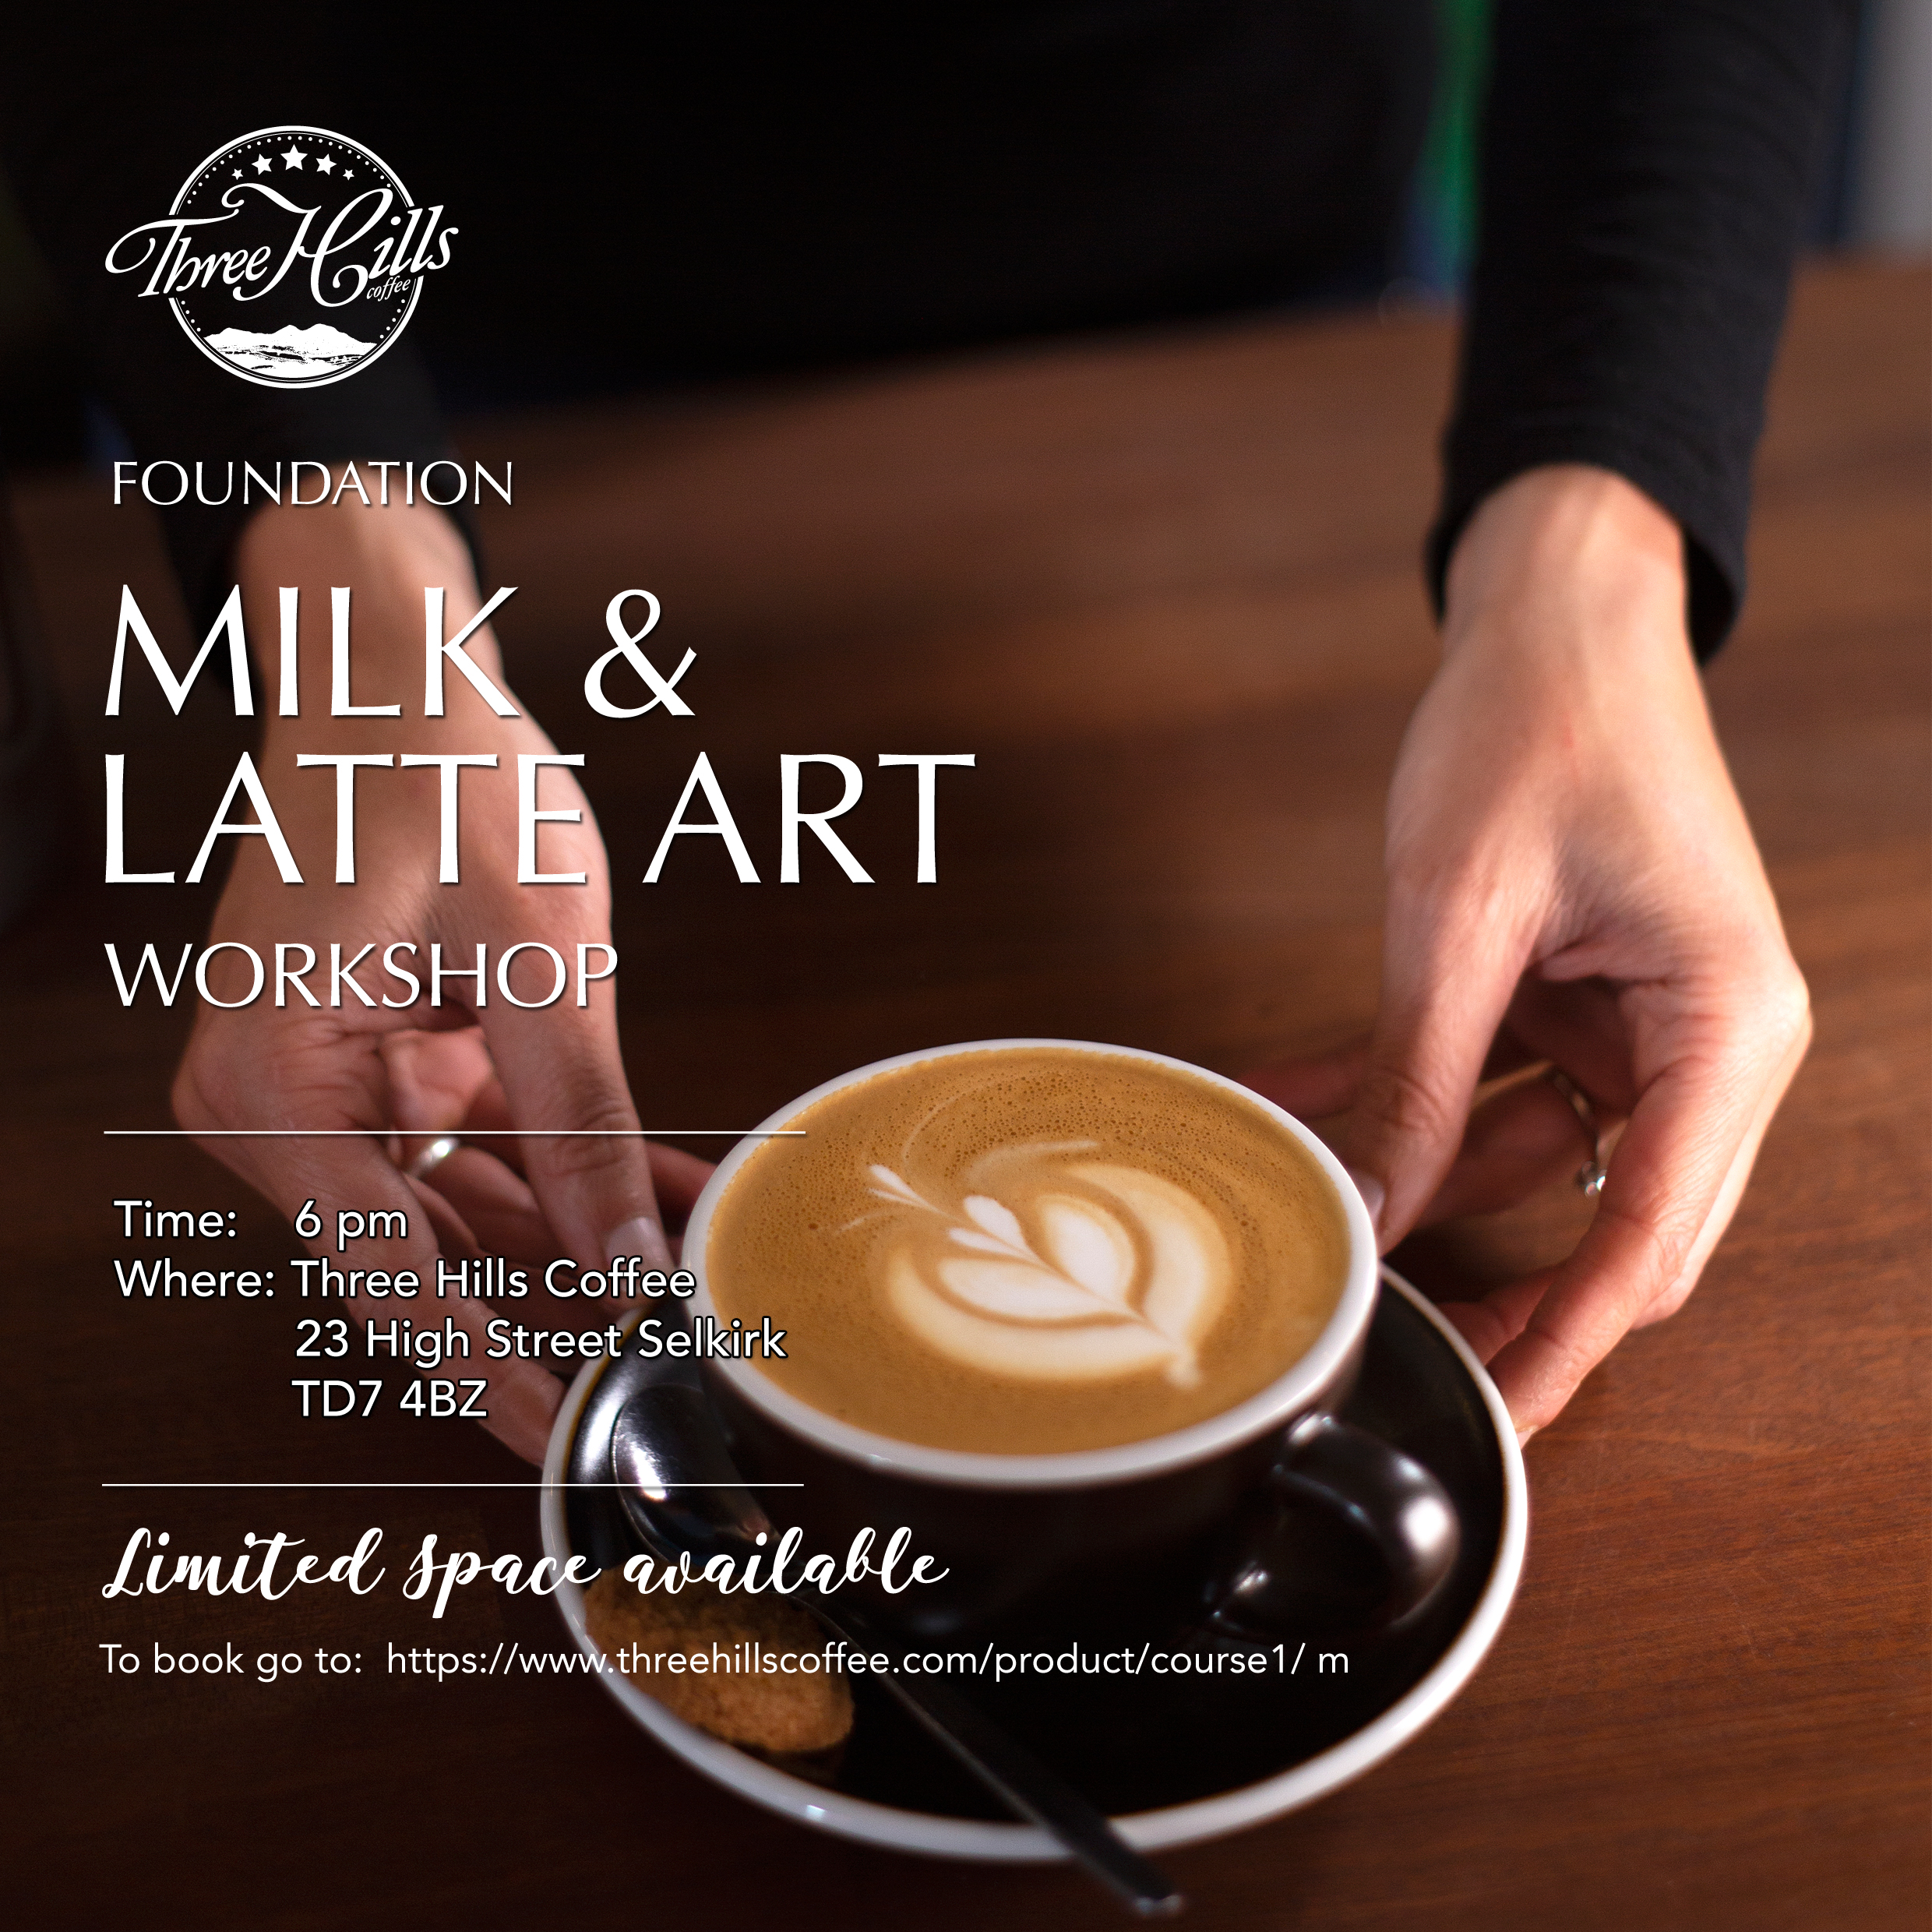 Latte art workshop 5 Dec